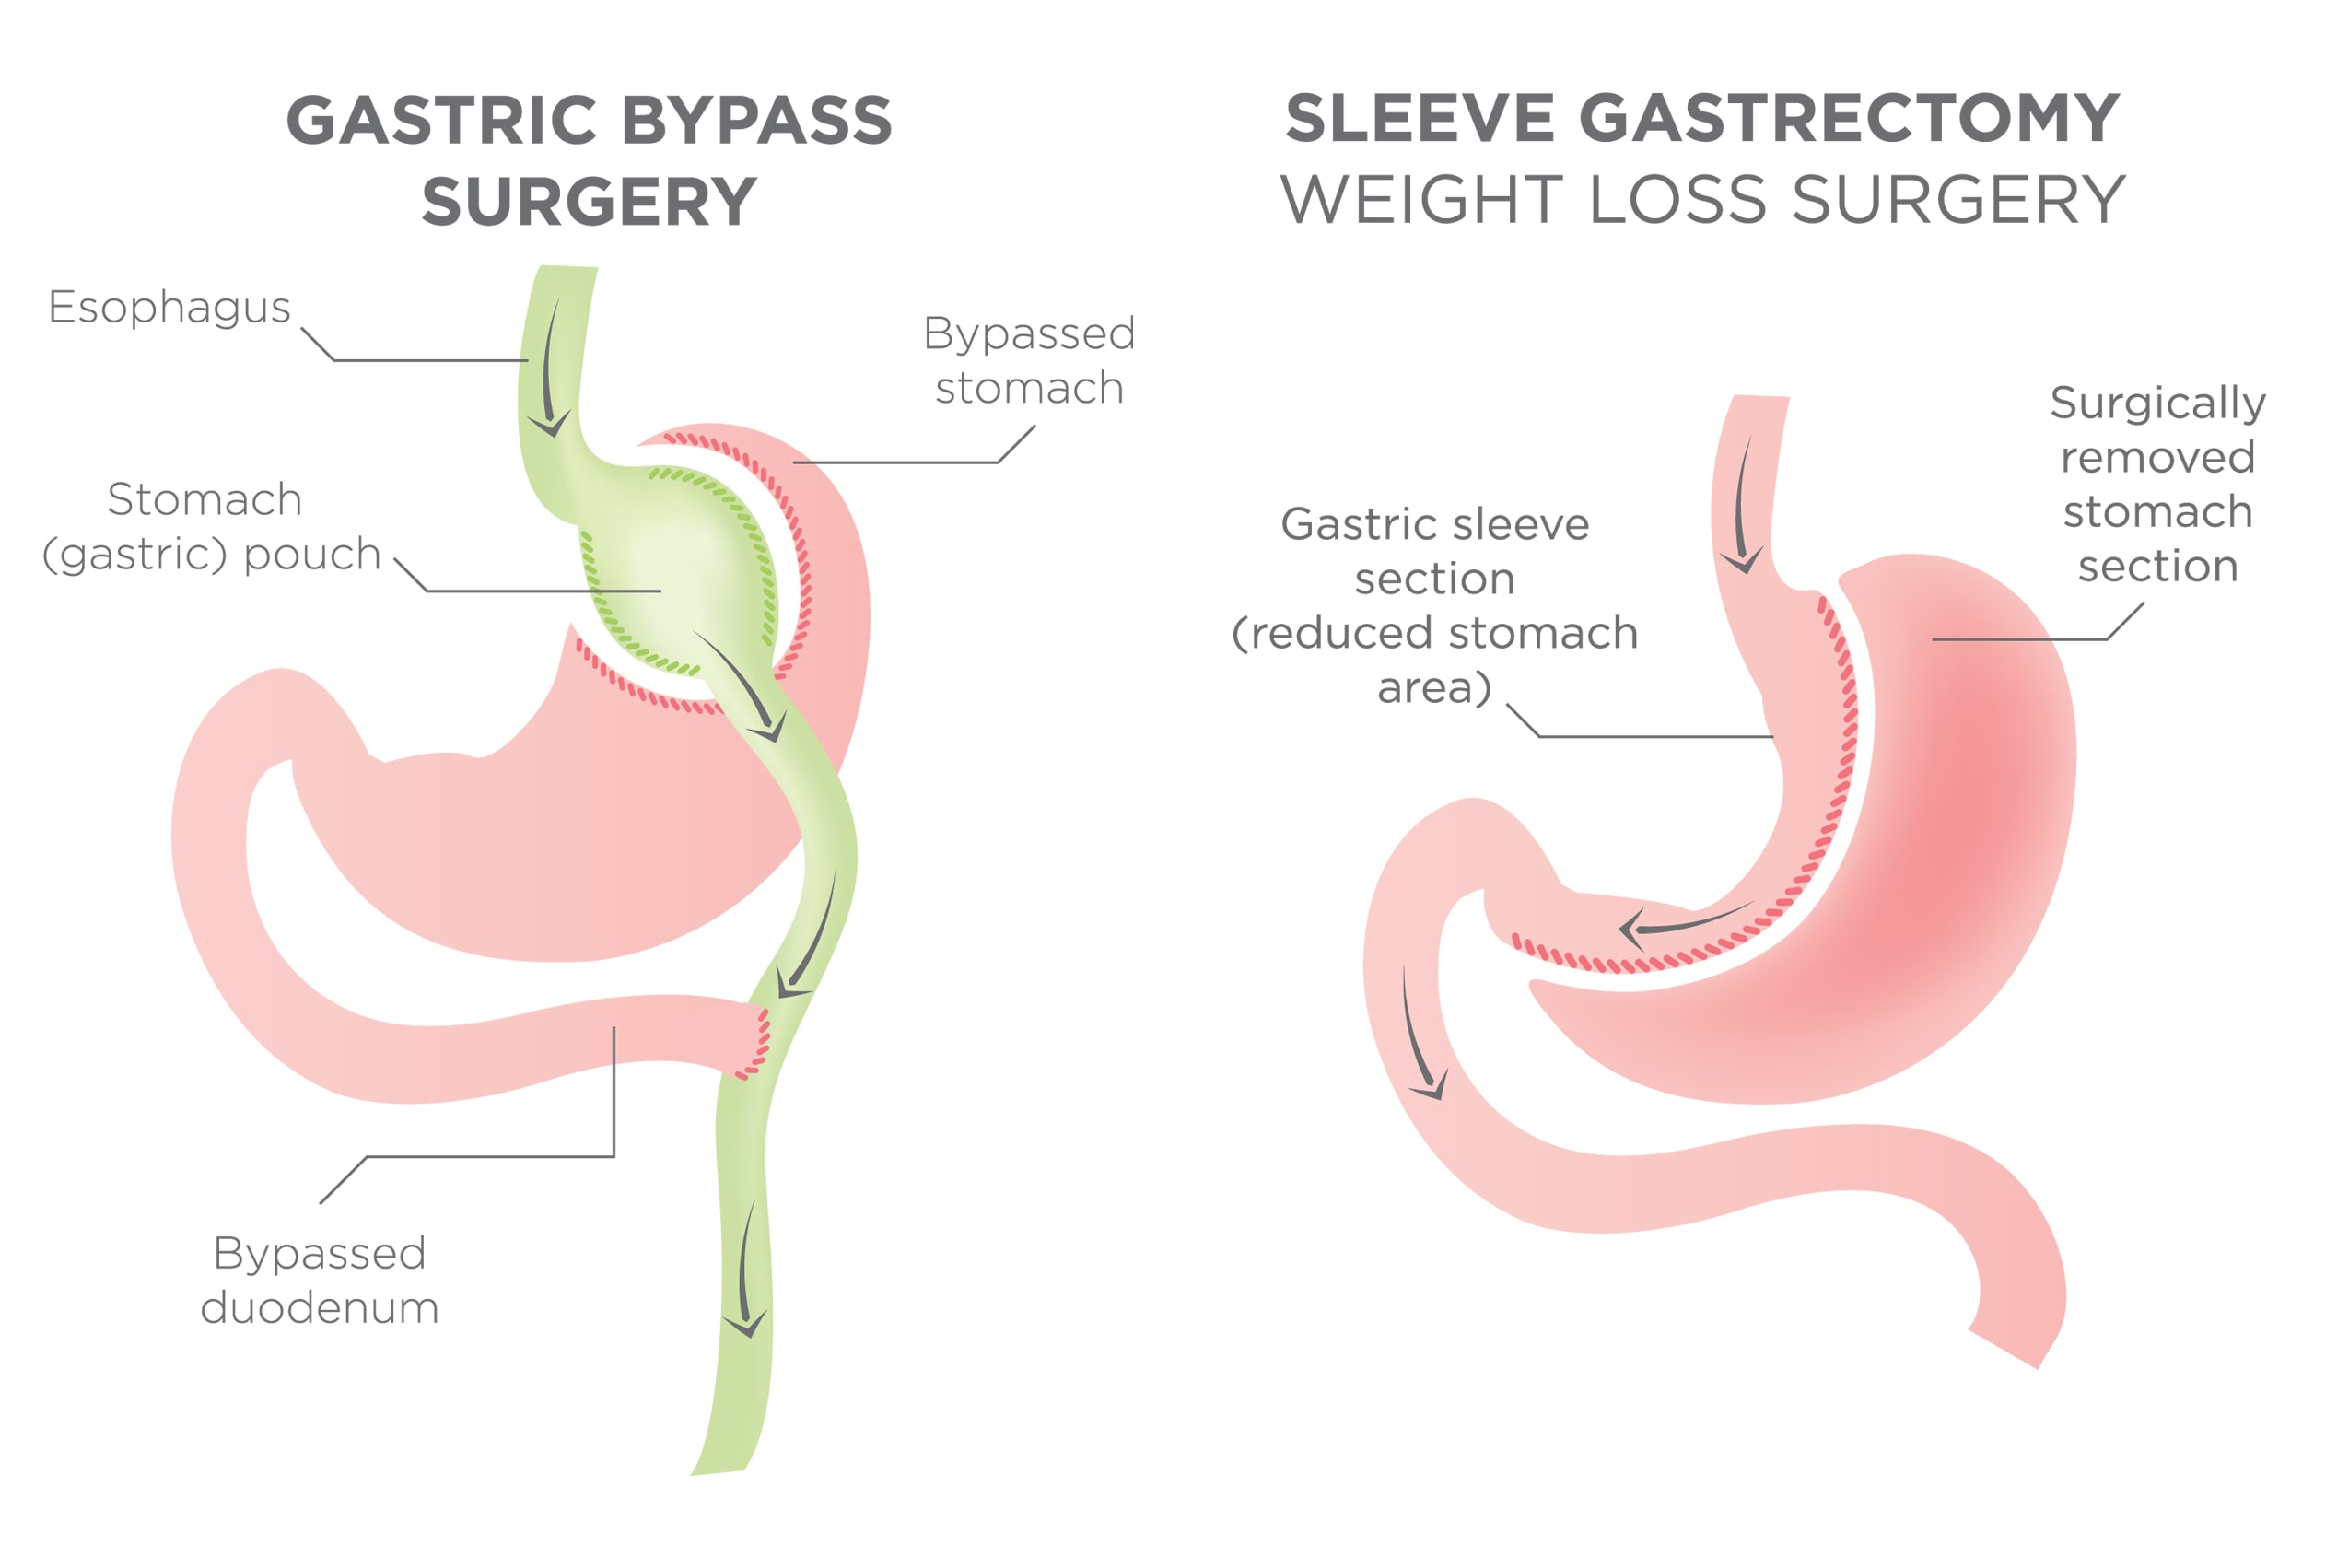 Illustration of bypass and sleeve surgery